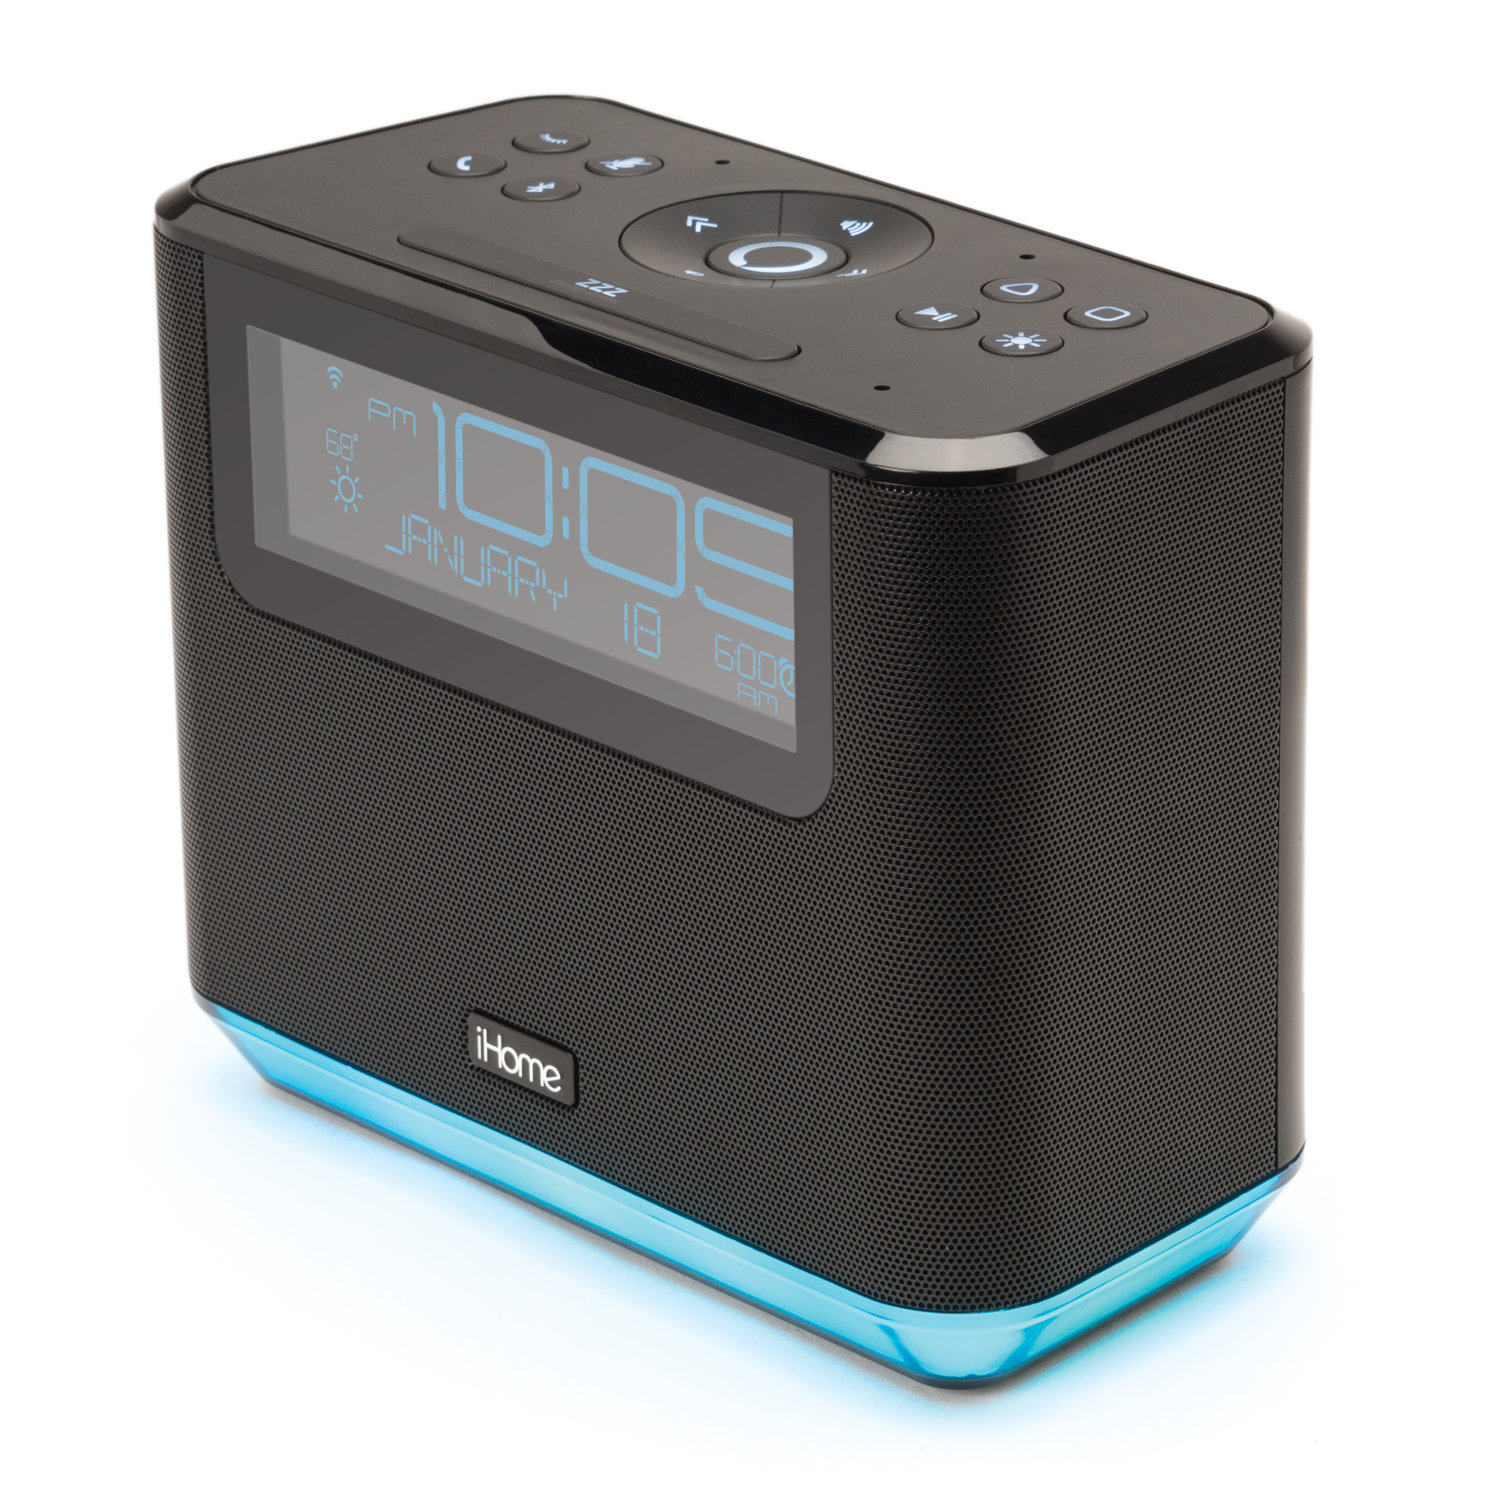 IHome Brings Alexa To The Bedroom With Voice-Activated